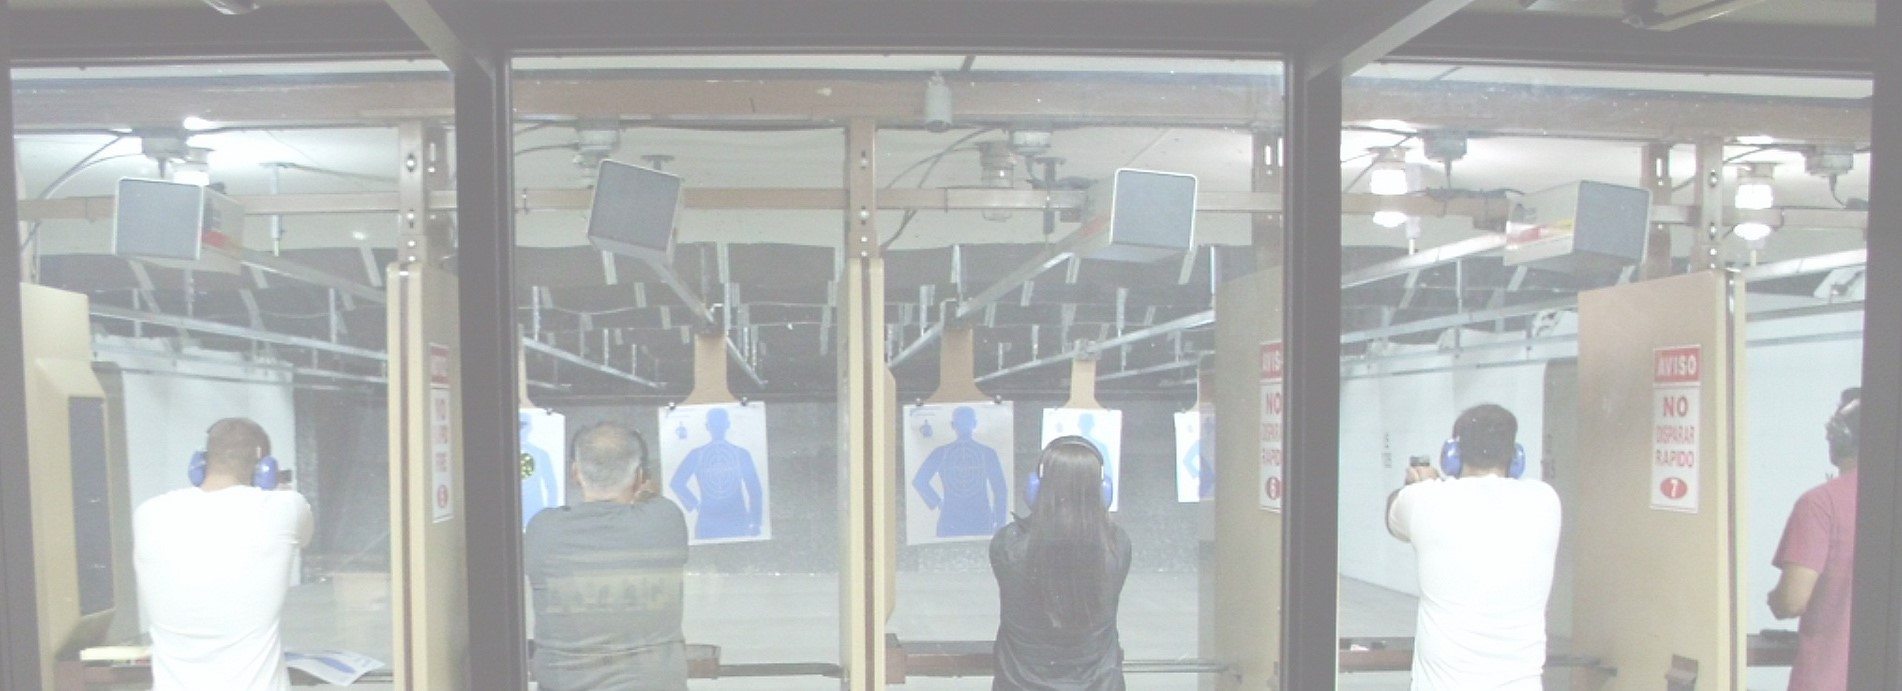 Shooting Range Facility Management Software